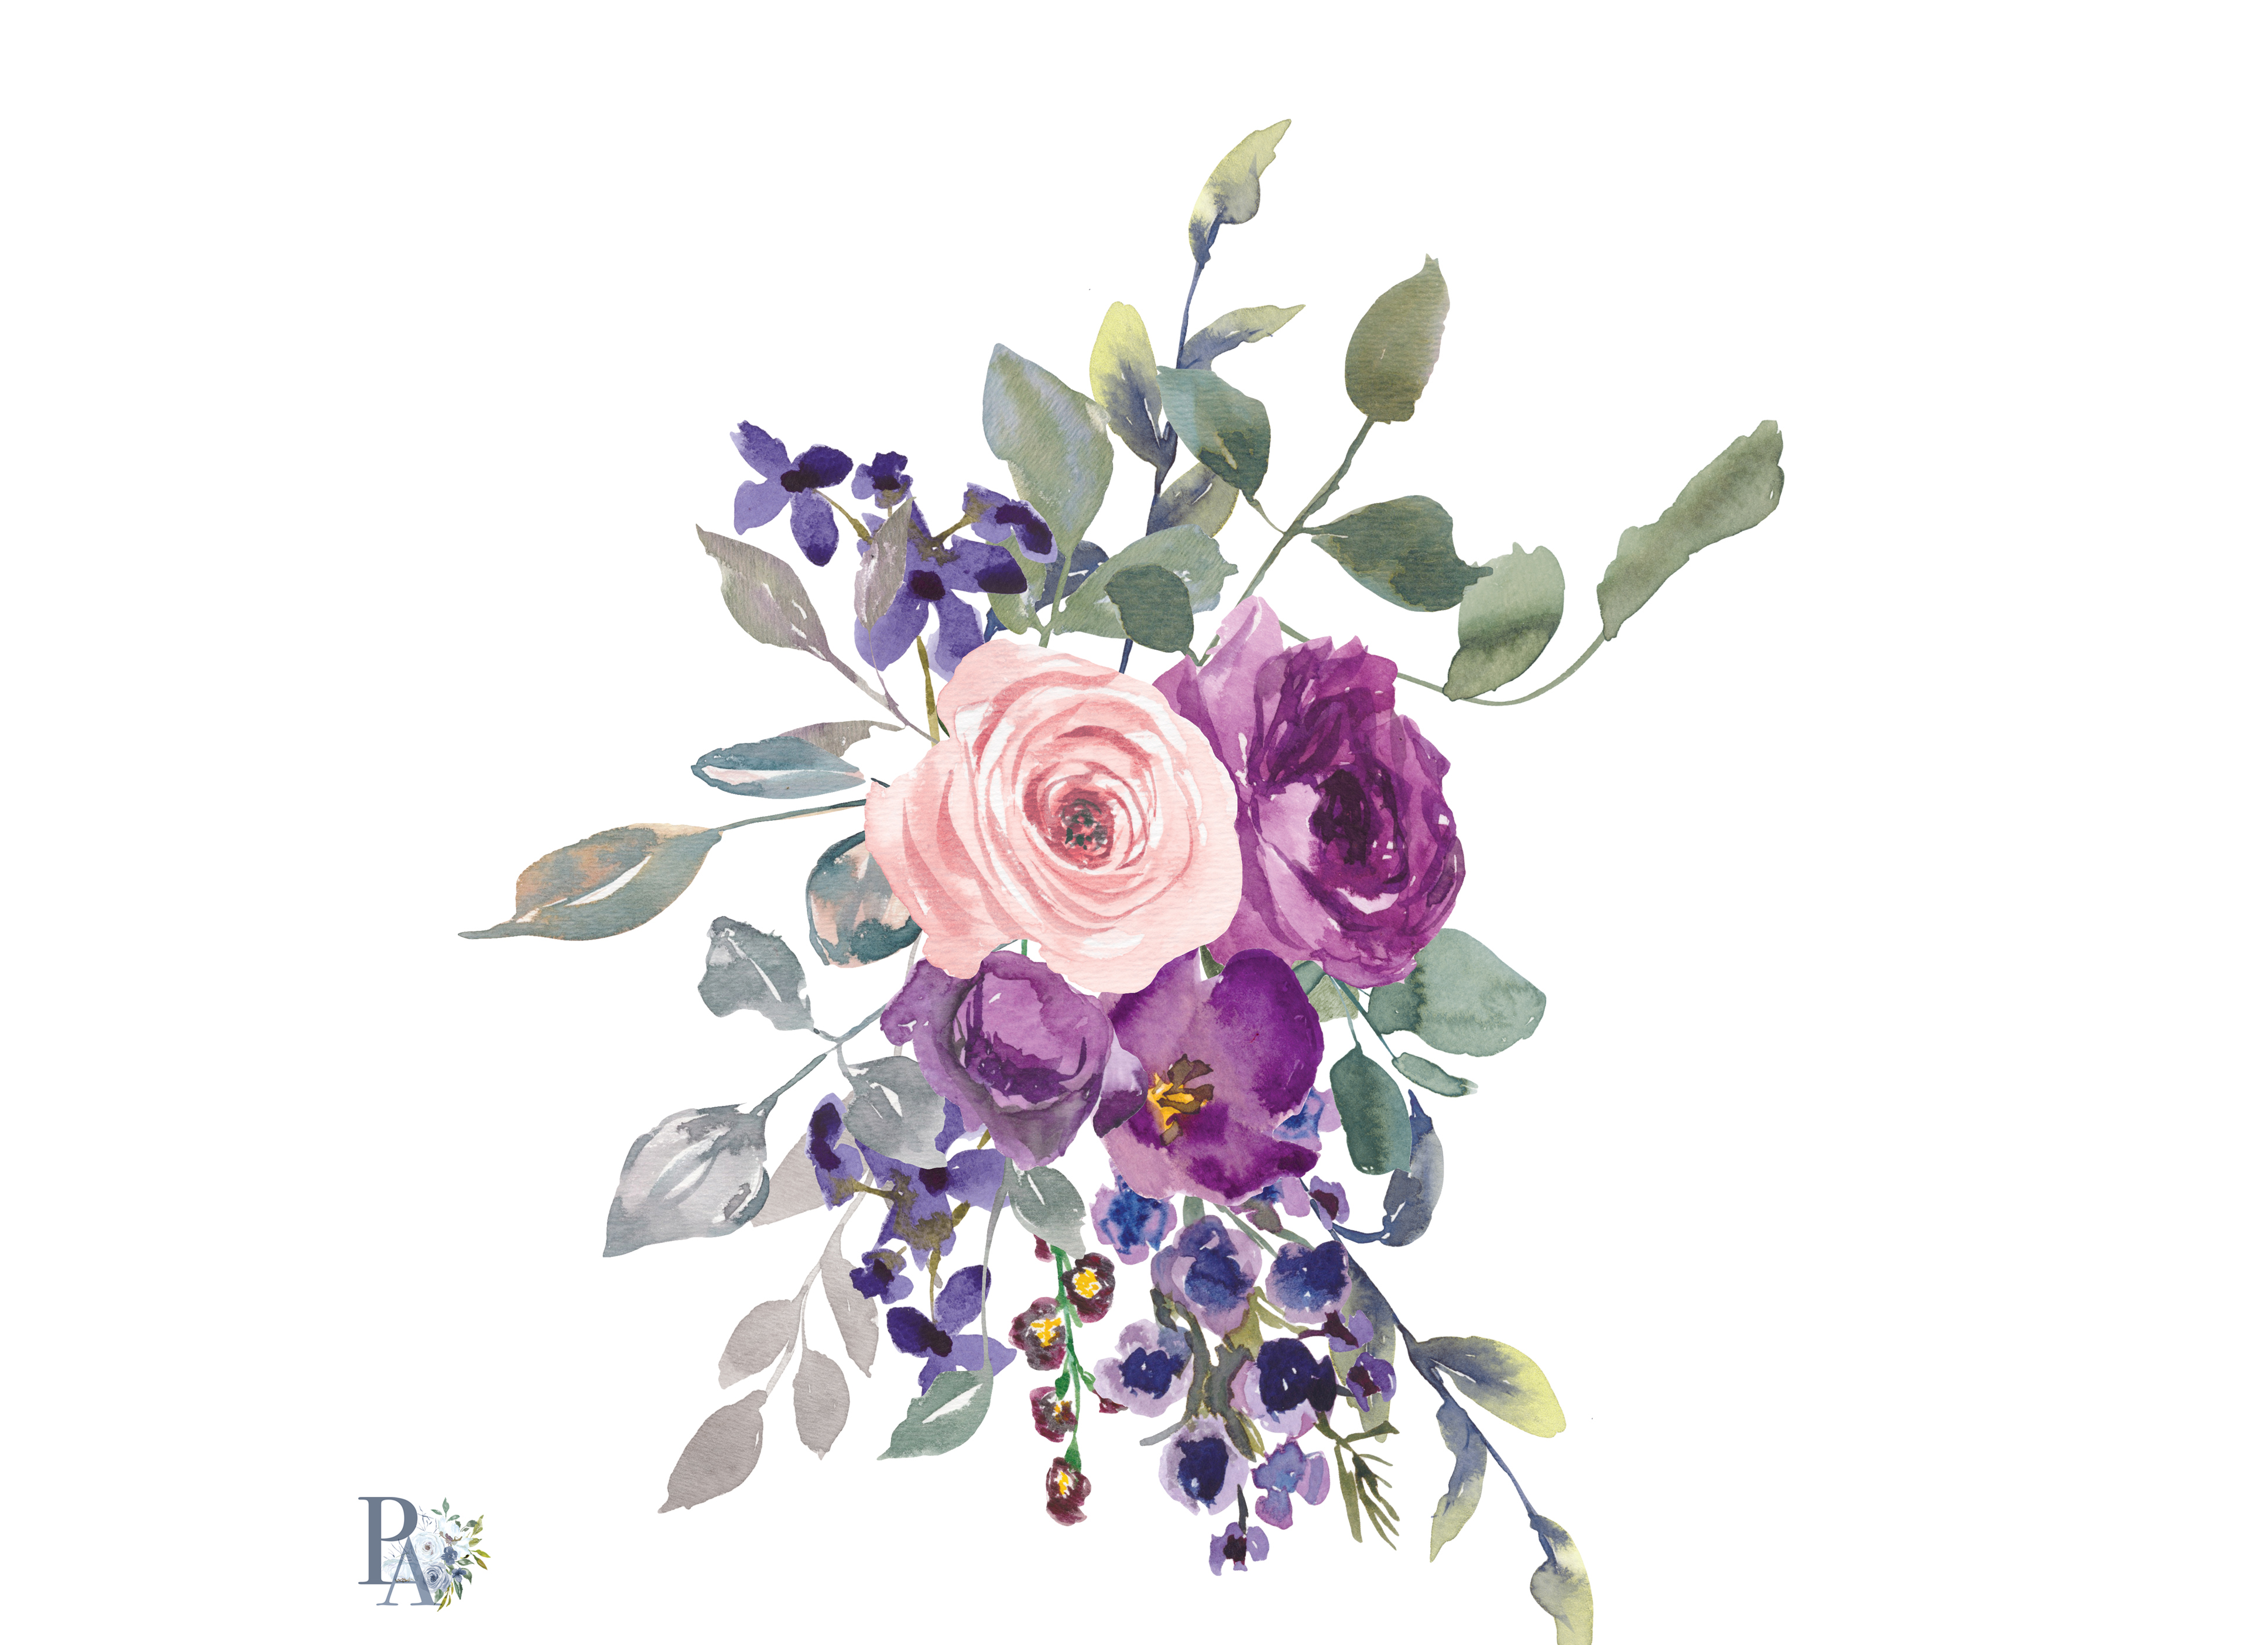 Watercolor plum lavender blush pink dar design bundles watercolor plum lavender blush pink dark purple flowers arrangement clipart roses and wax flowers example image mightylinksfo